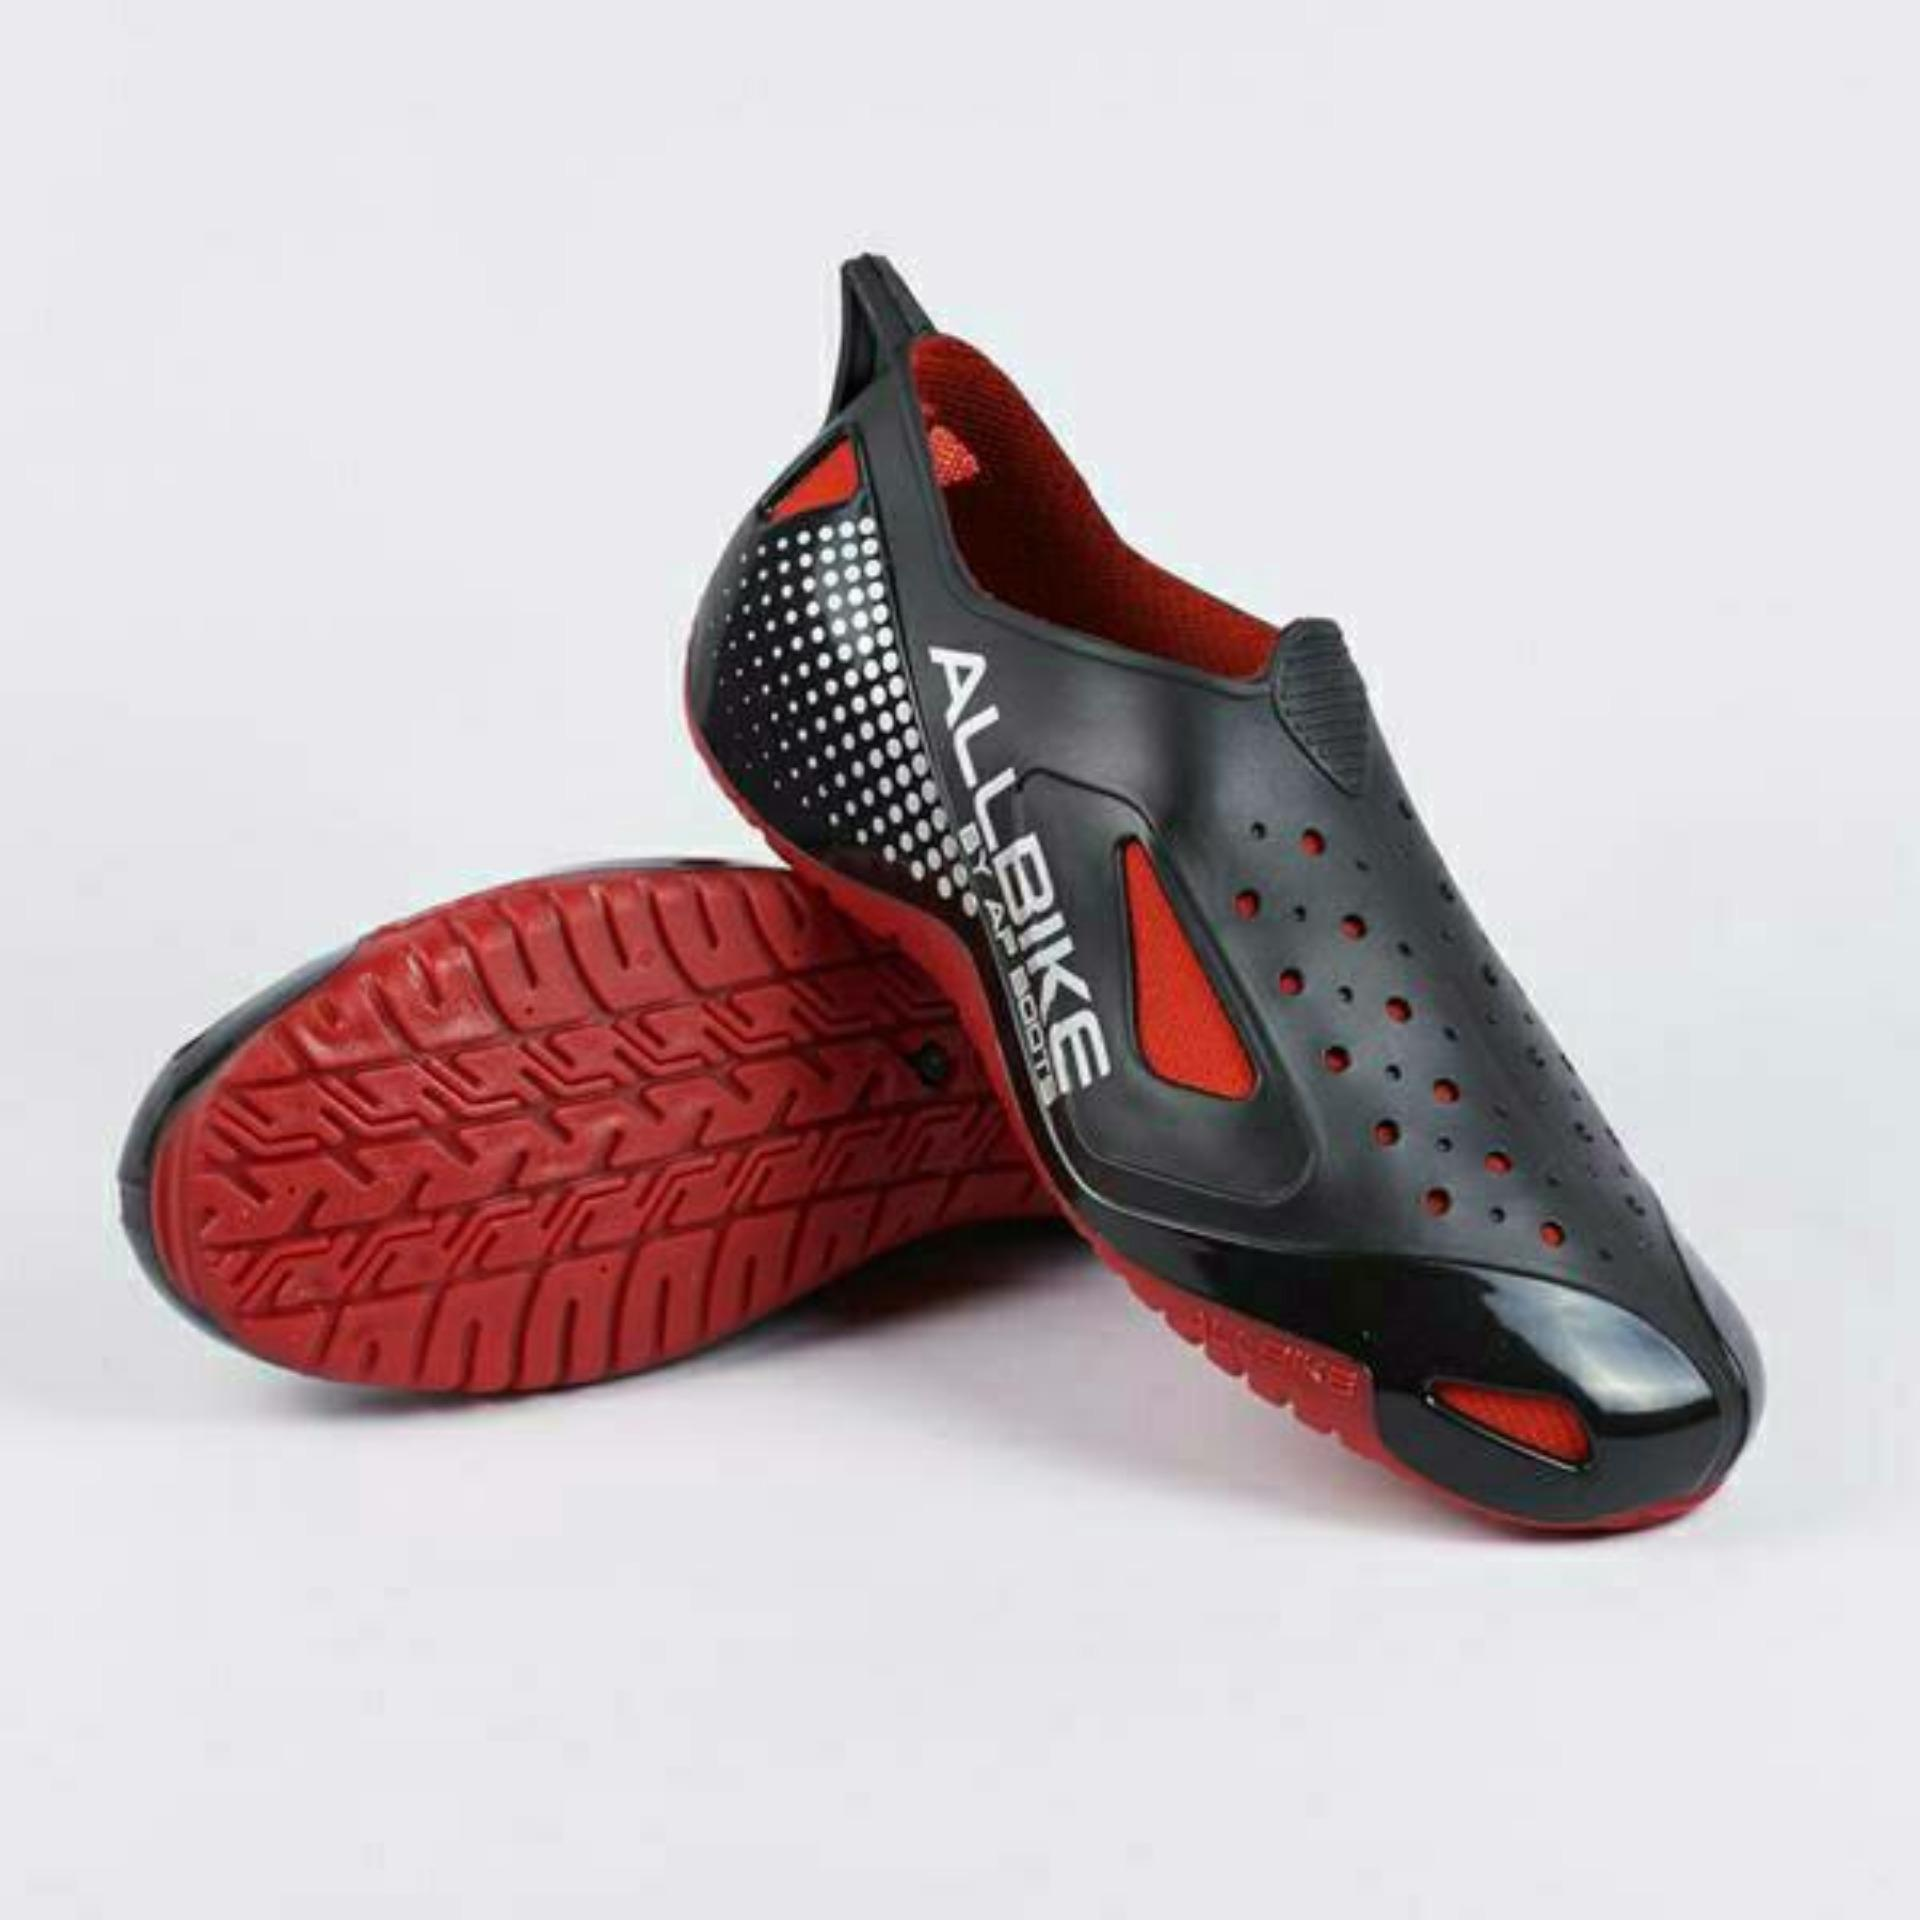 Sepatu Karet Allbike MERAH By ApBoots All Bike RED Shoes Bikes Ap Boots  Boot Bikers Murah c8a8e90059